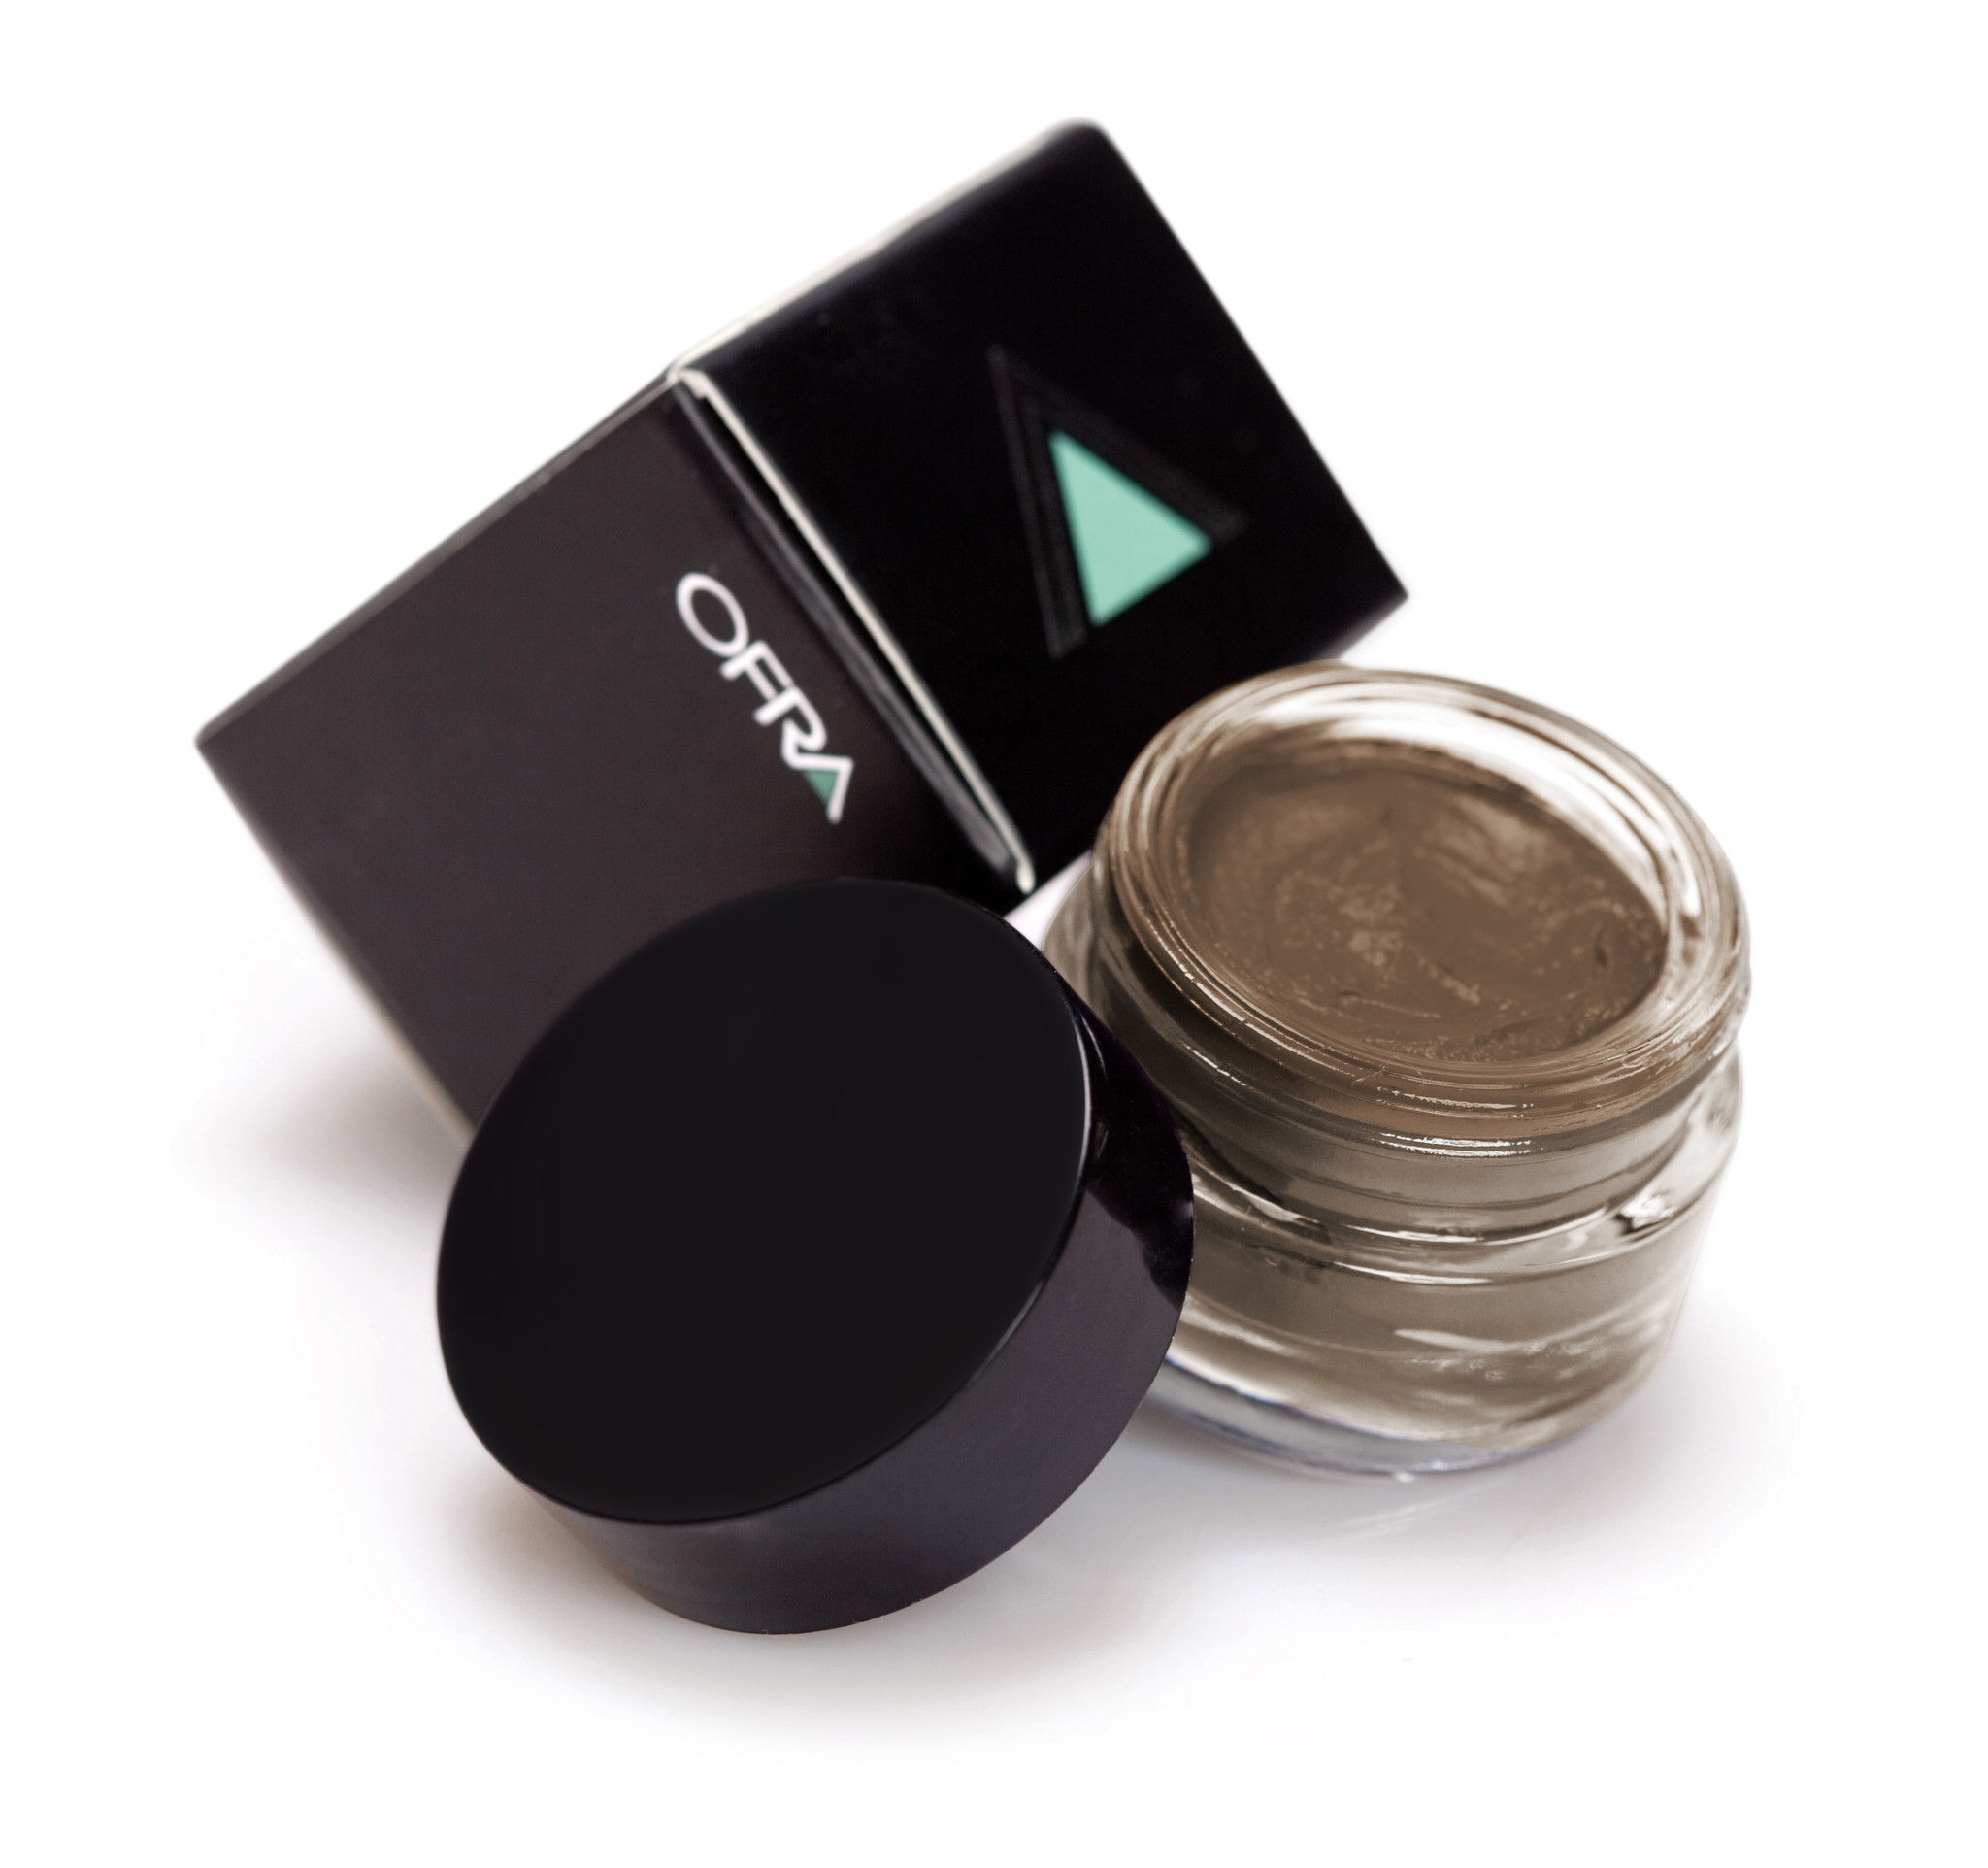 OFRA-Brow-gel